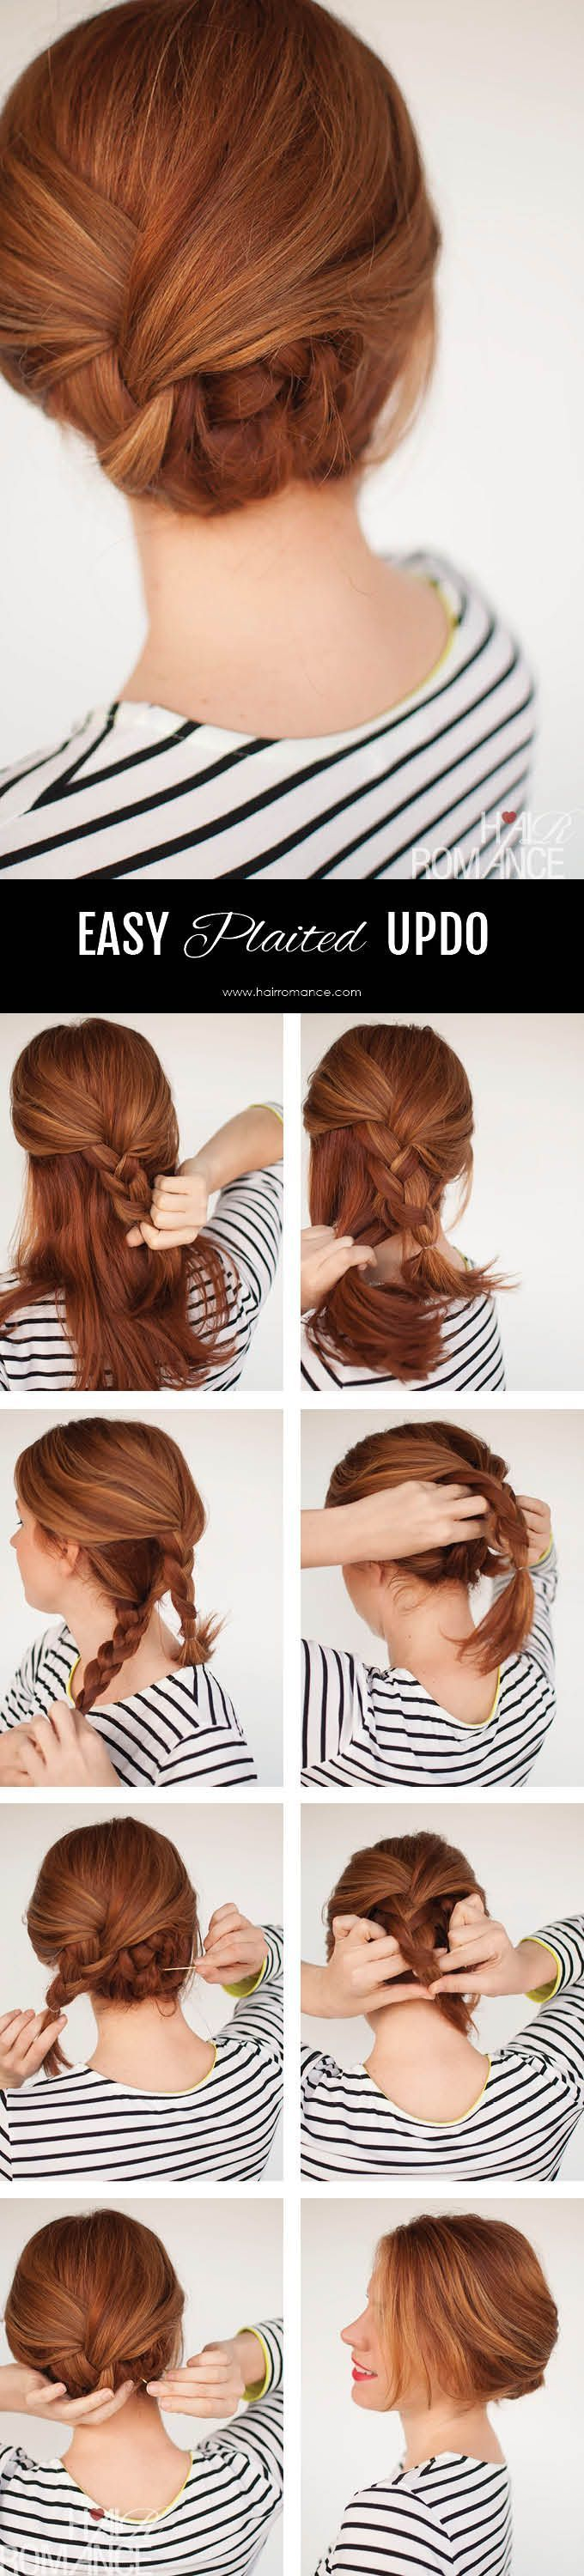 Hair Style - Wonderpiel  http://blog.wonderpiel.com/